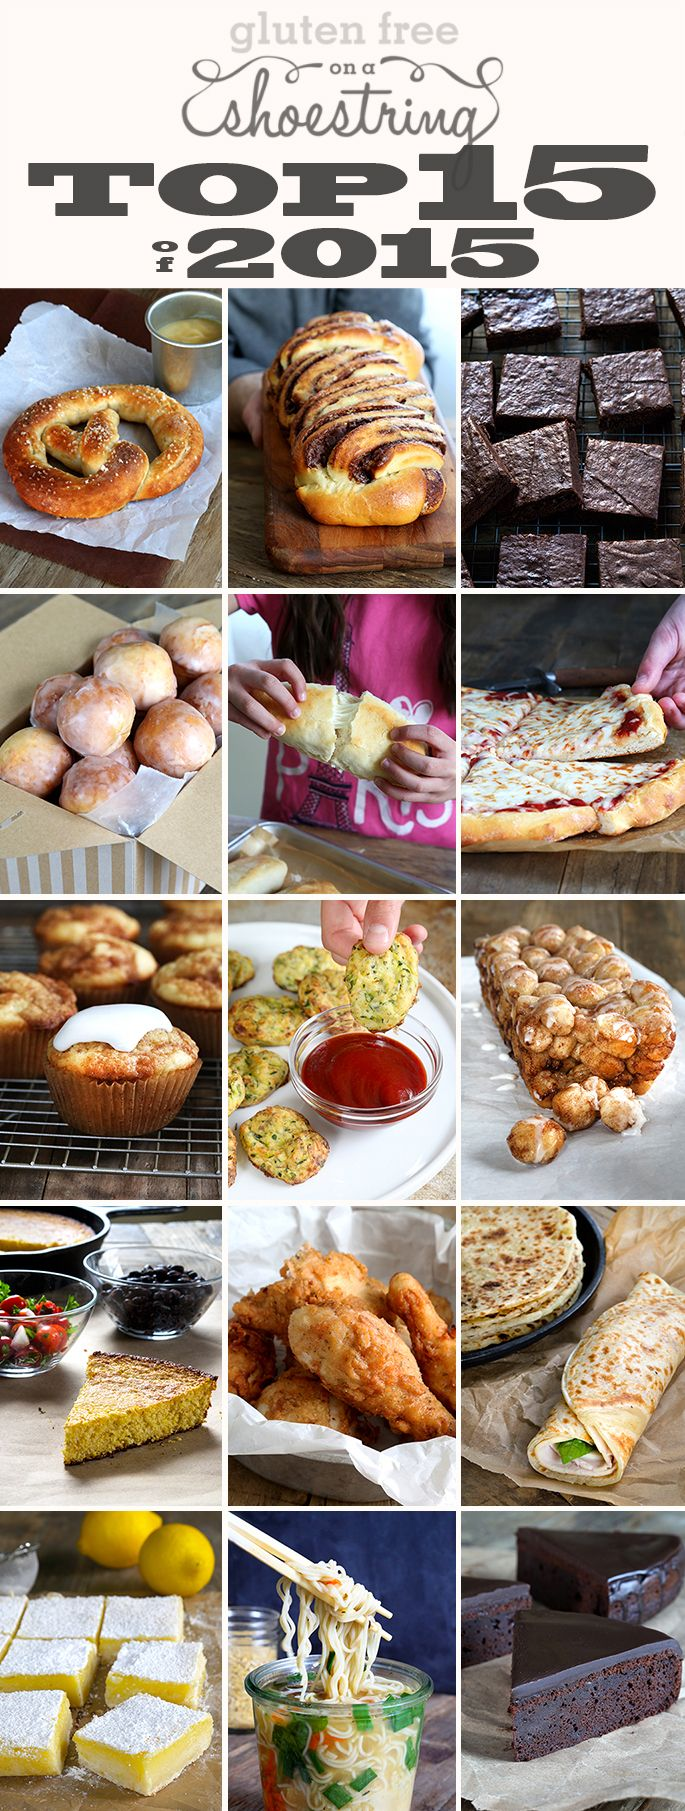 The Very Best Gluten Free Recipes of 2015